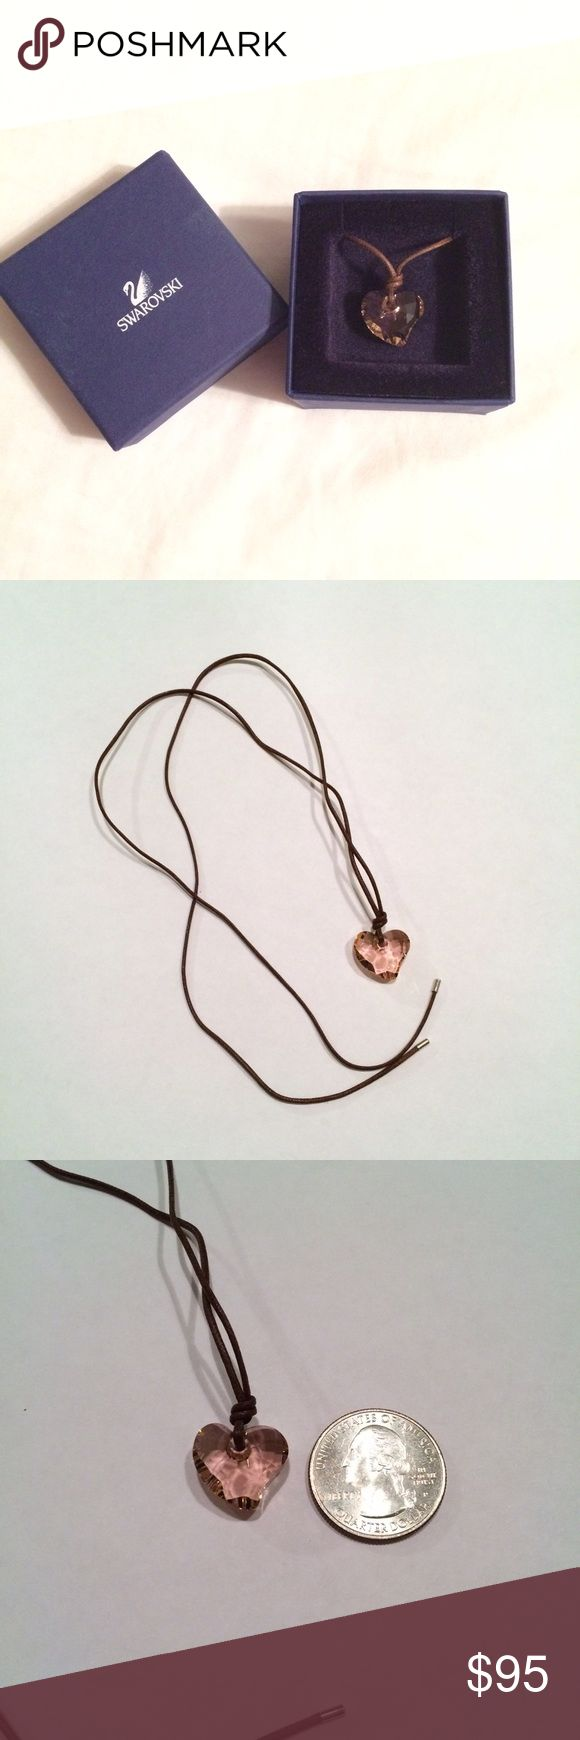 ⚡️SALE⚡️ Swarovski Heart Pendant Necklace NWOT. Authentic, perfect condition, never worn. The first time I took it out of the box was to take these pictures. Brown 24 inch cord. (Quarter for size reference). Light pink heart, picture makes it look orangey but it is pink. Original box included. Swarovski Jewelry Necklaces